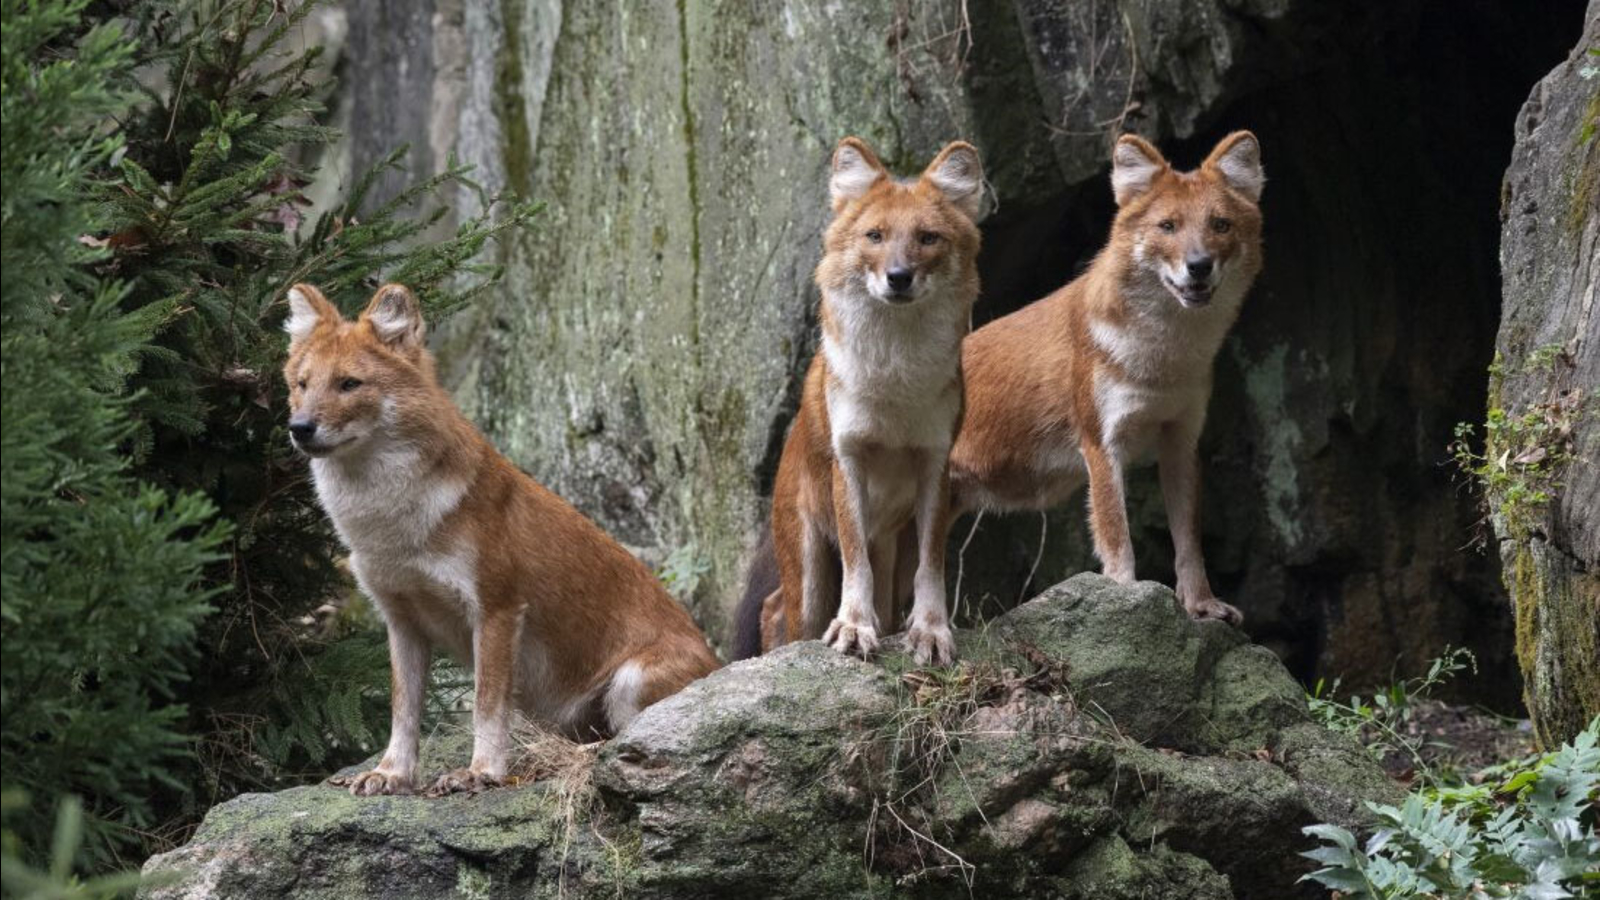 Bronx Zoo debuts pack of endangered Asian wild dogs in new exhibit